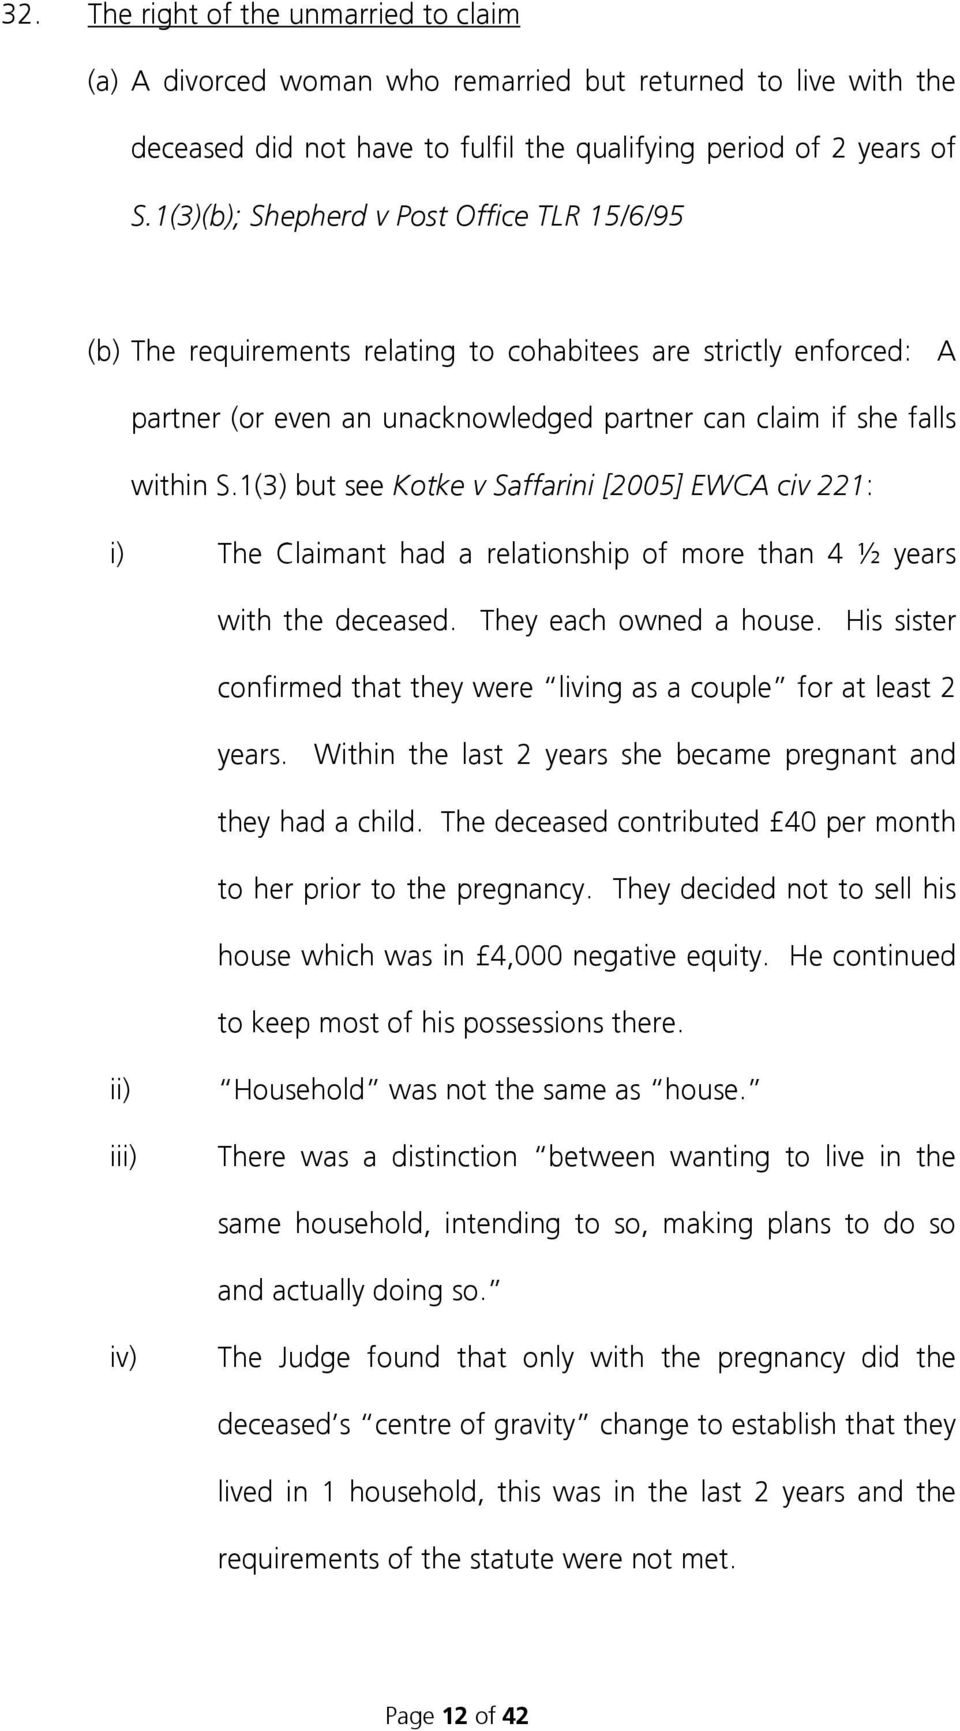 1(3) but see Kotke v Saffarini [2005] EWCA civ 221: i) The Claimant had a relationship of more than 4 ½ years with the deceased. They each owned a house.